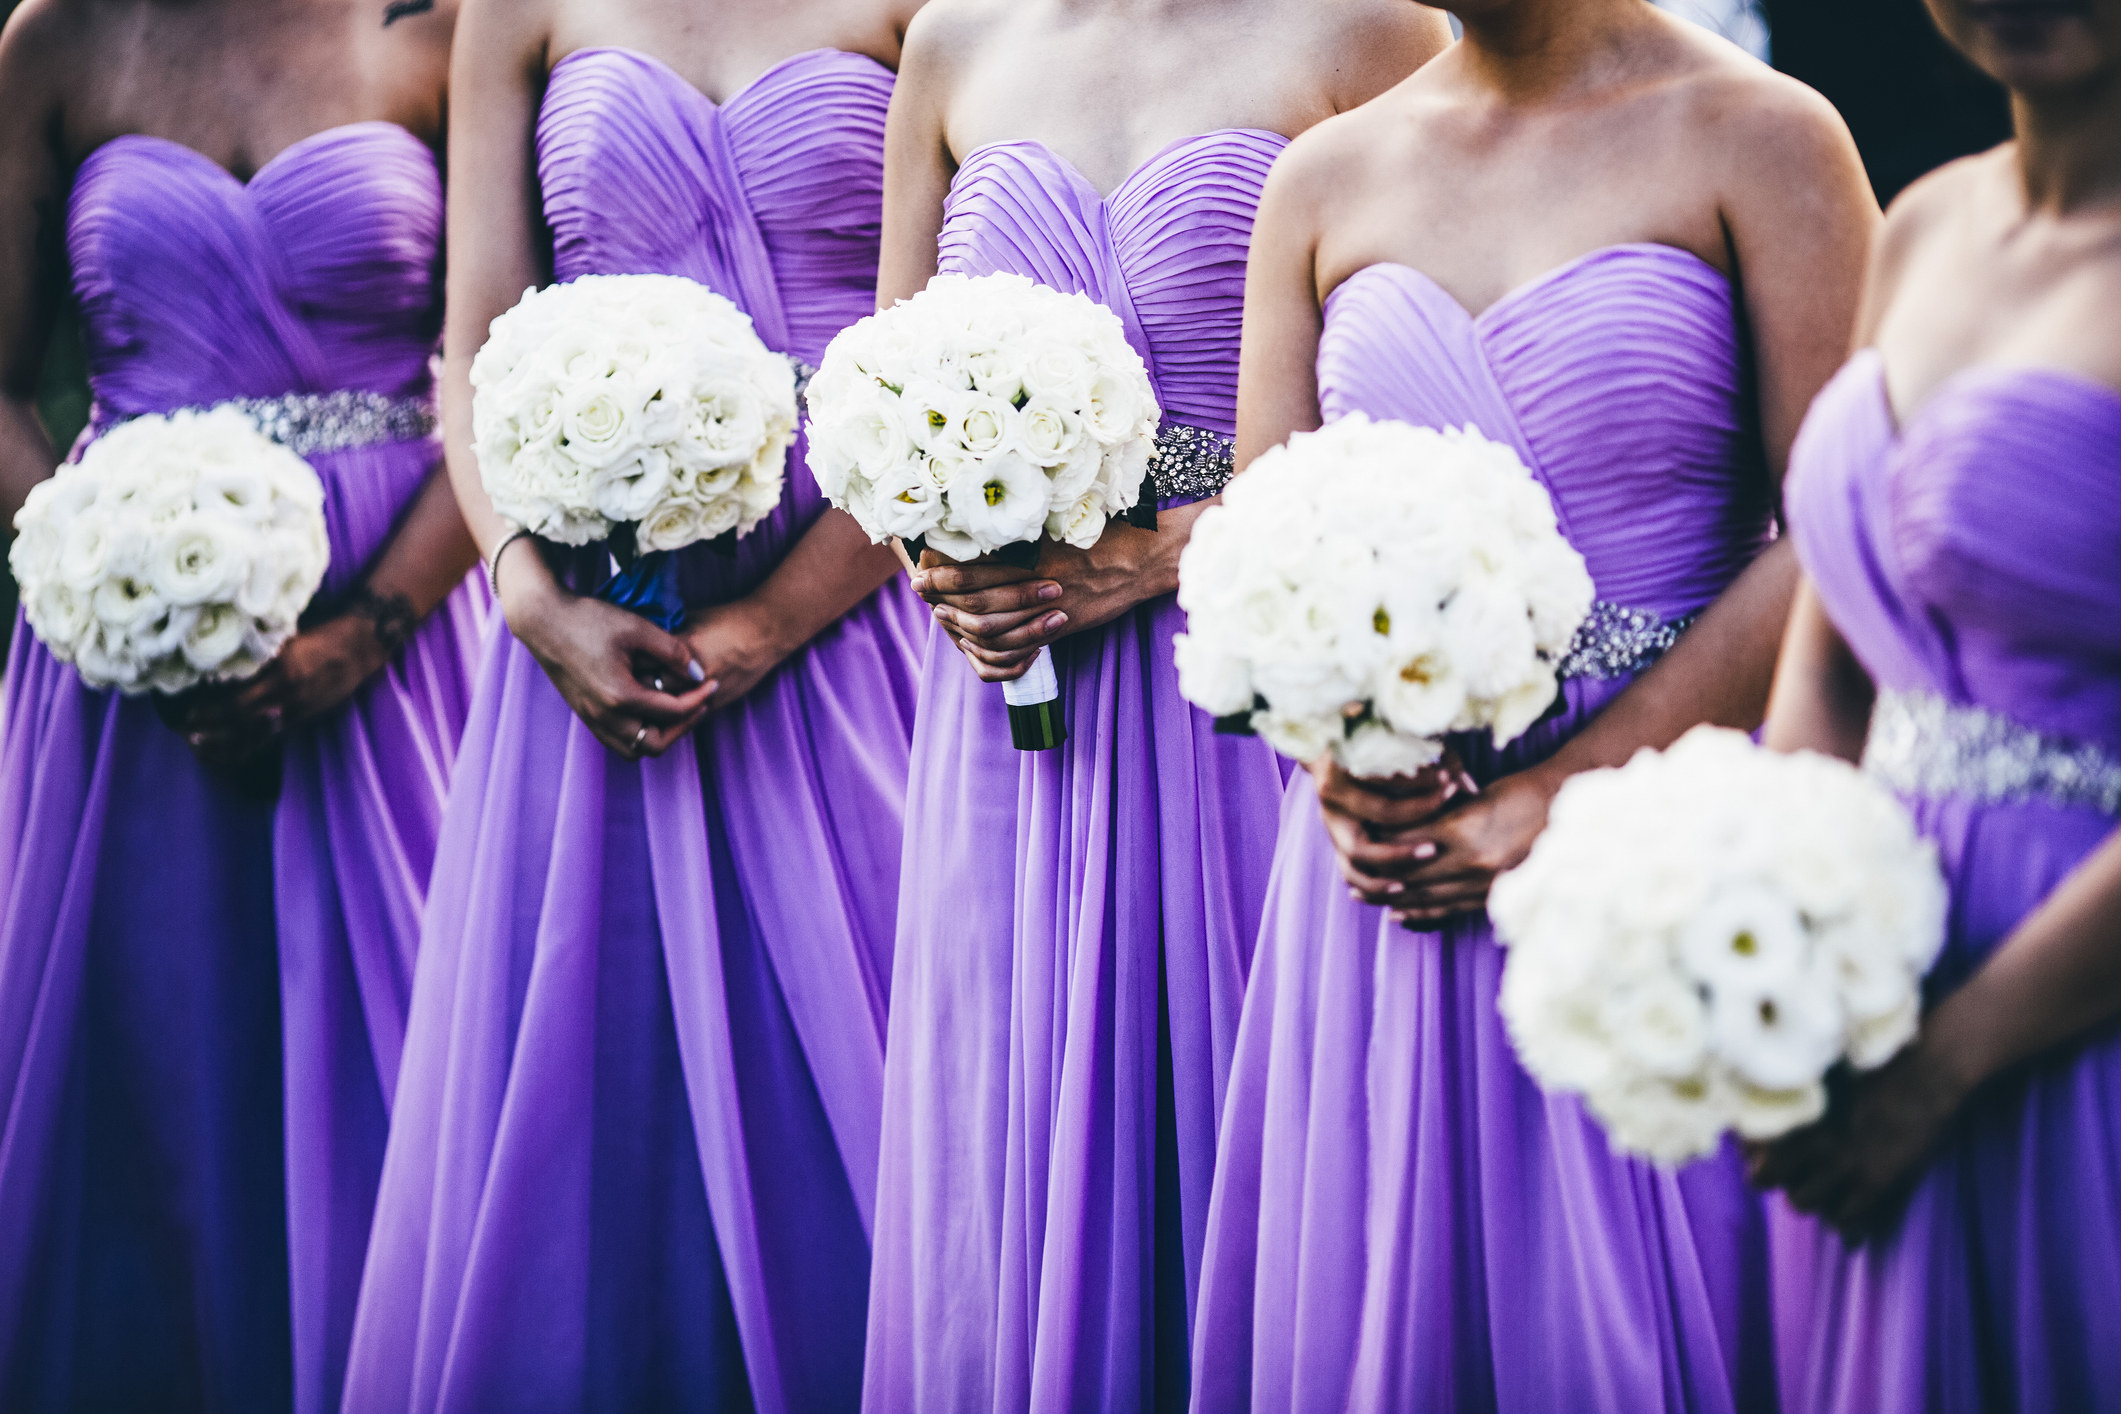 Bridesmaids at a wedding with completely identical dresses